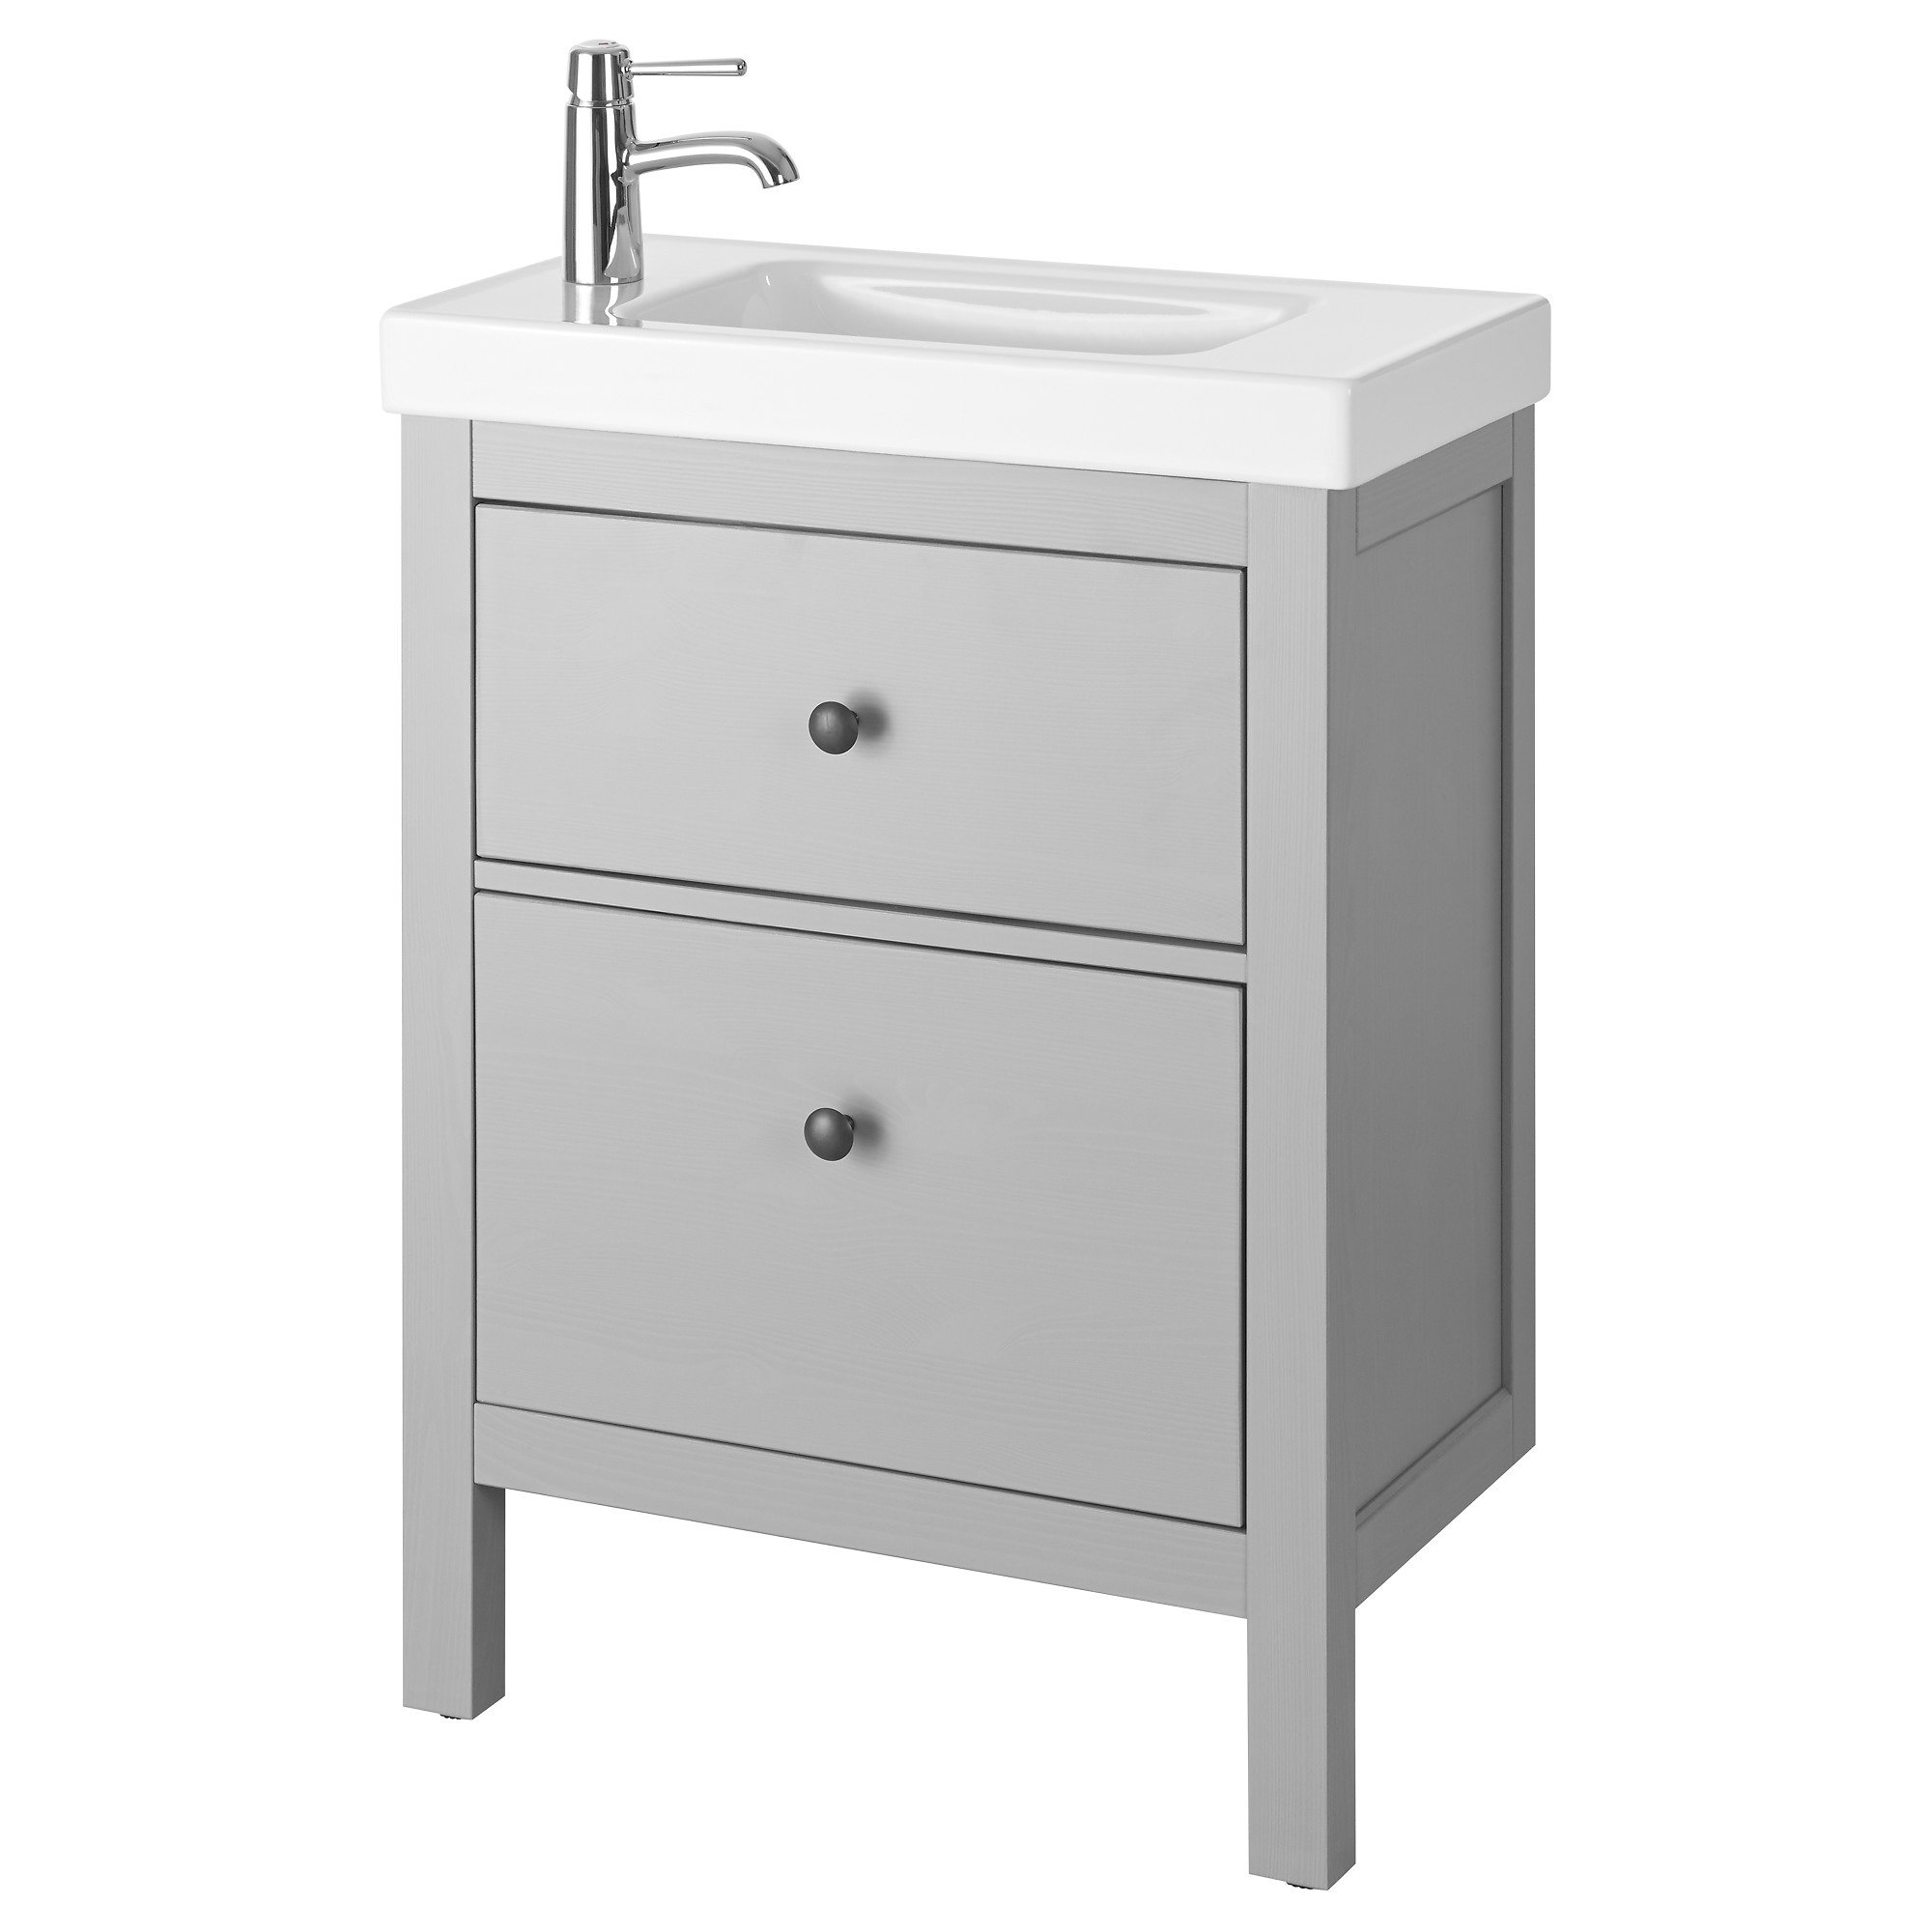 HEMNES bathroom series. - IKEA